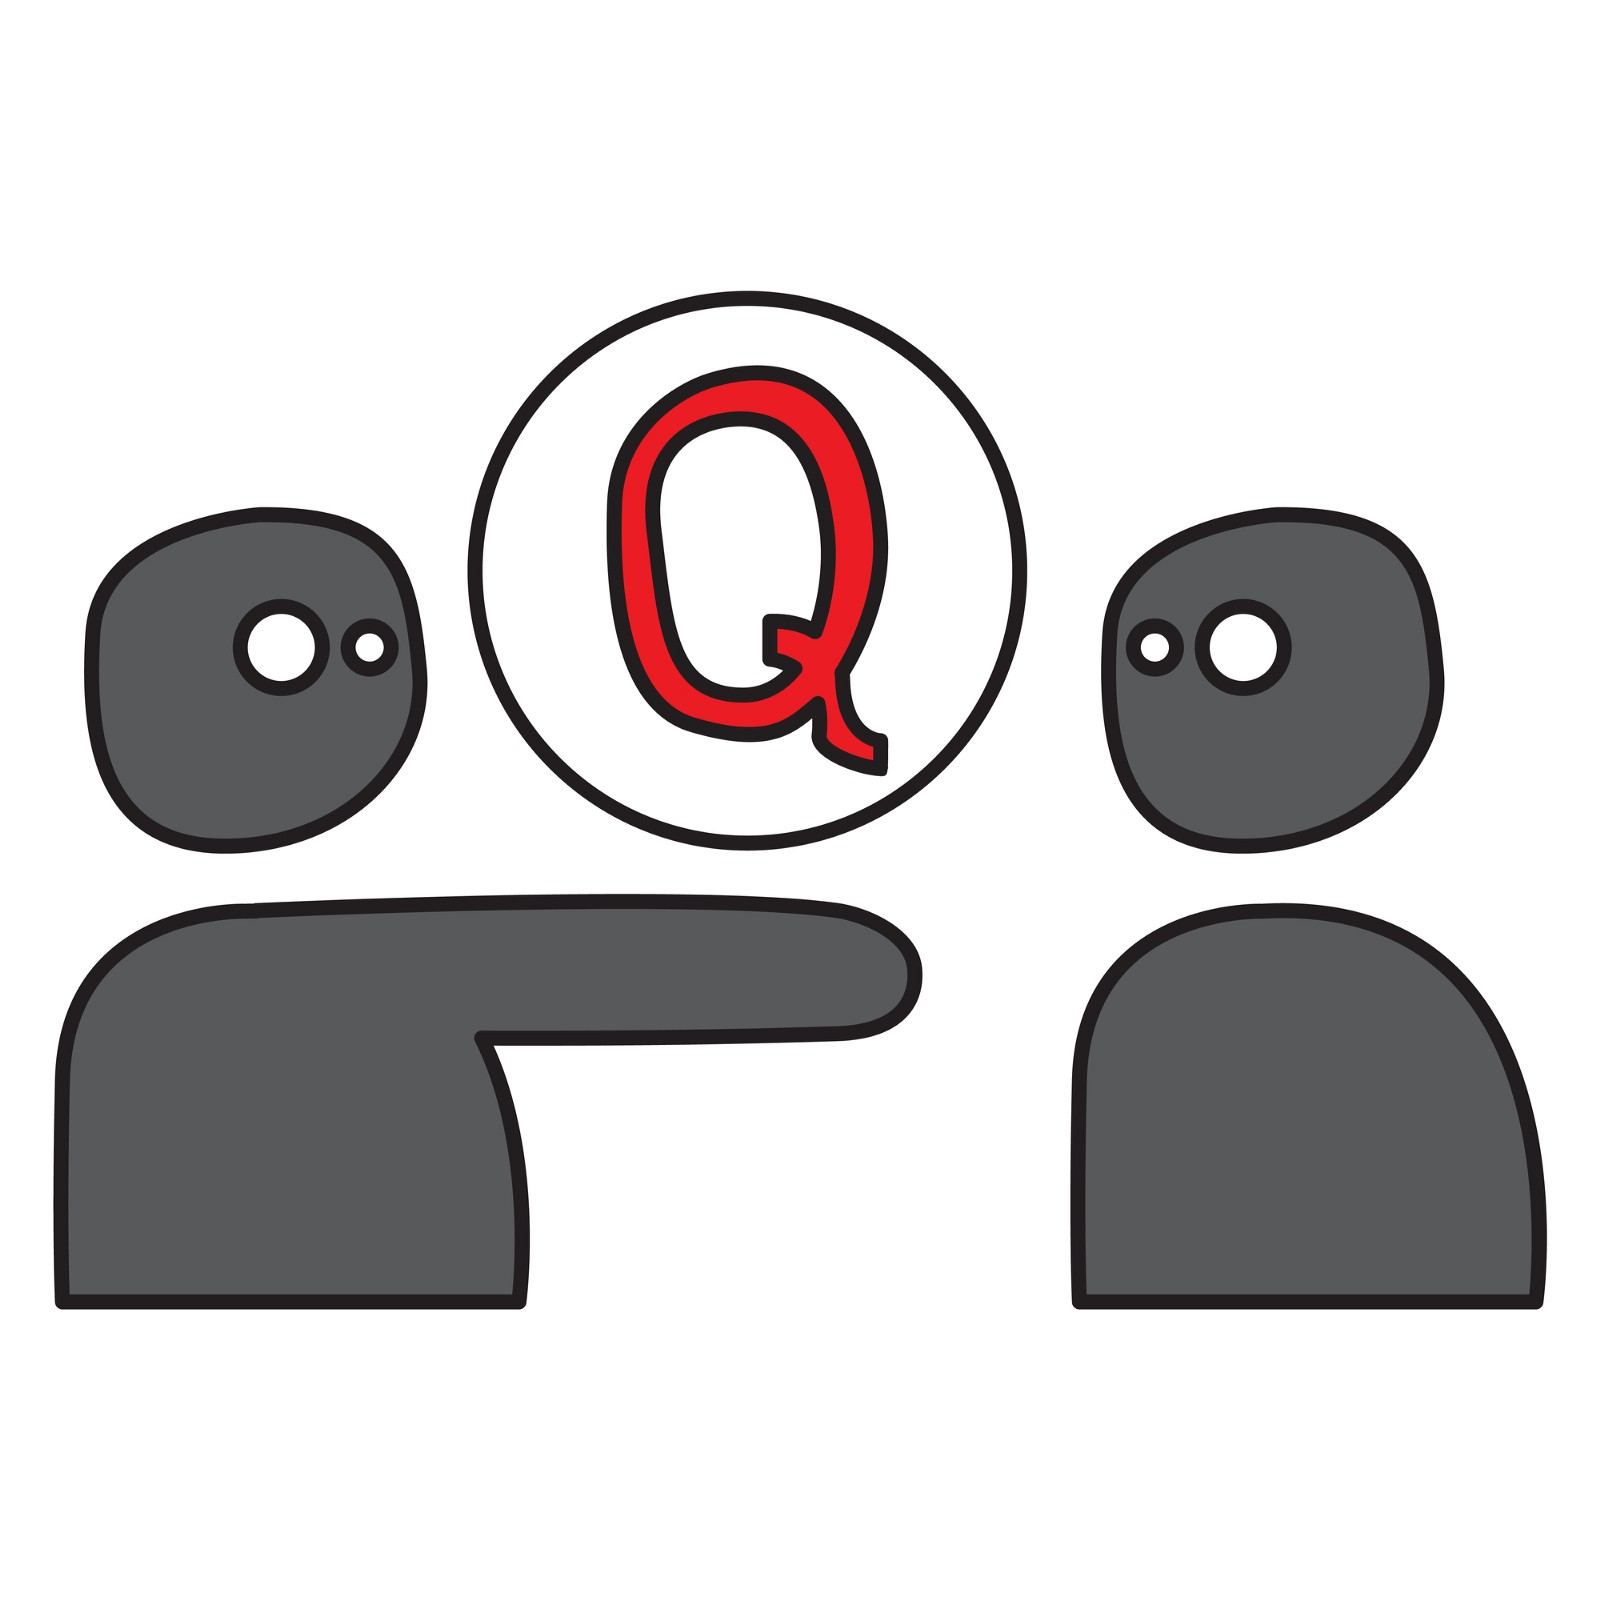 /whats-the-business-of-quora-it-s-about-asking-the-right-question-7f6049d9b12e feature image